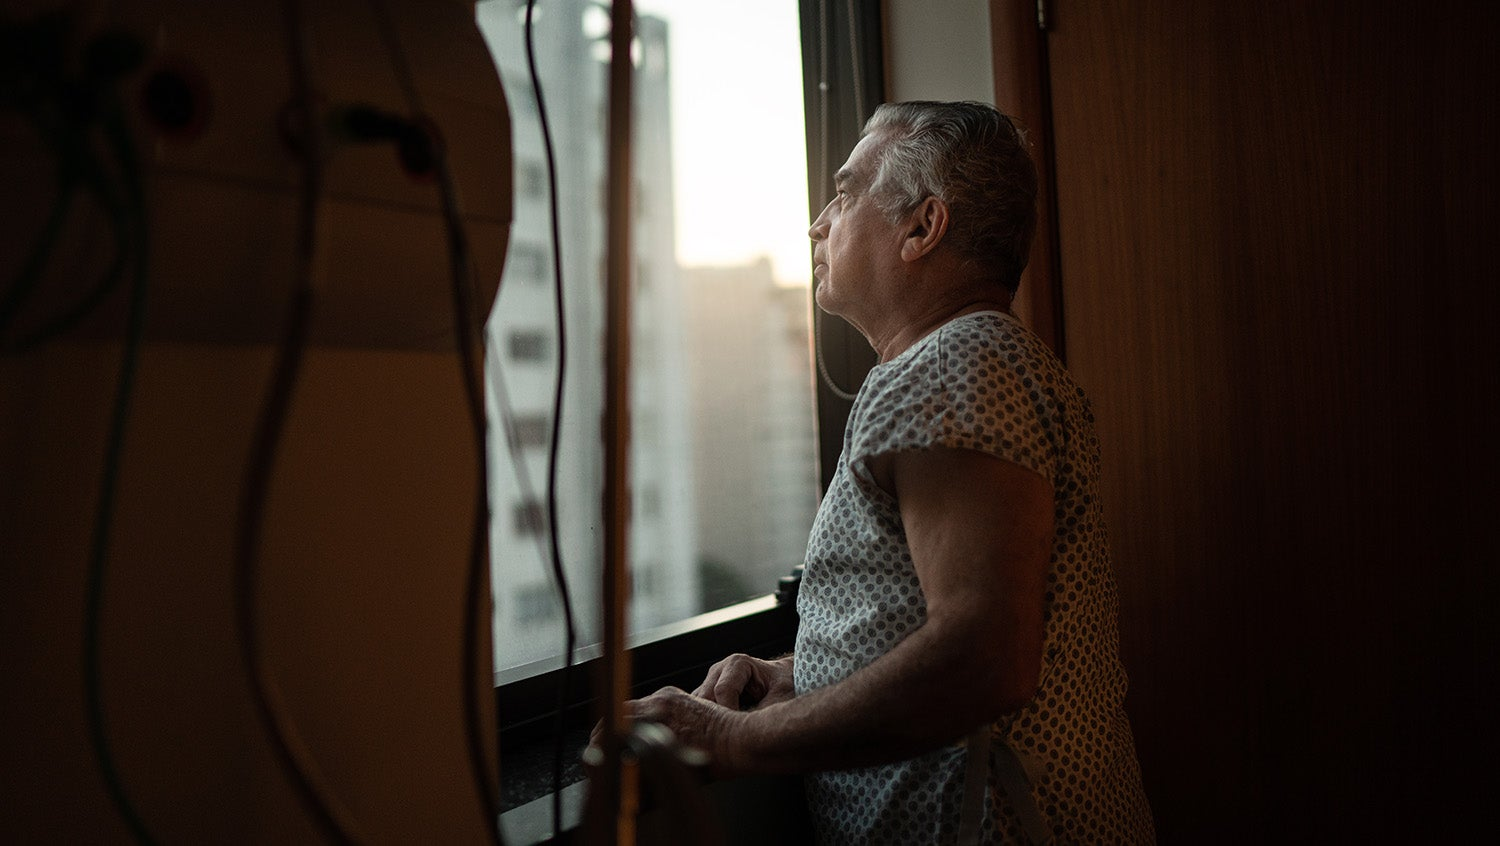 Man in hospital gown looks out room window